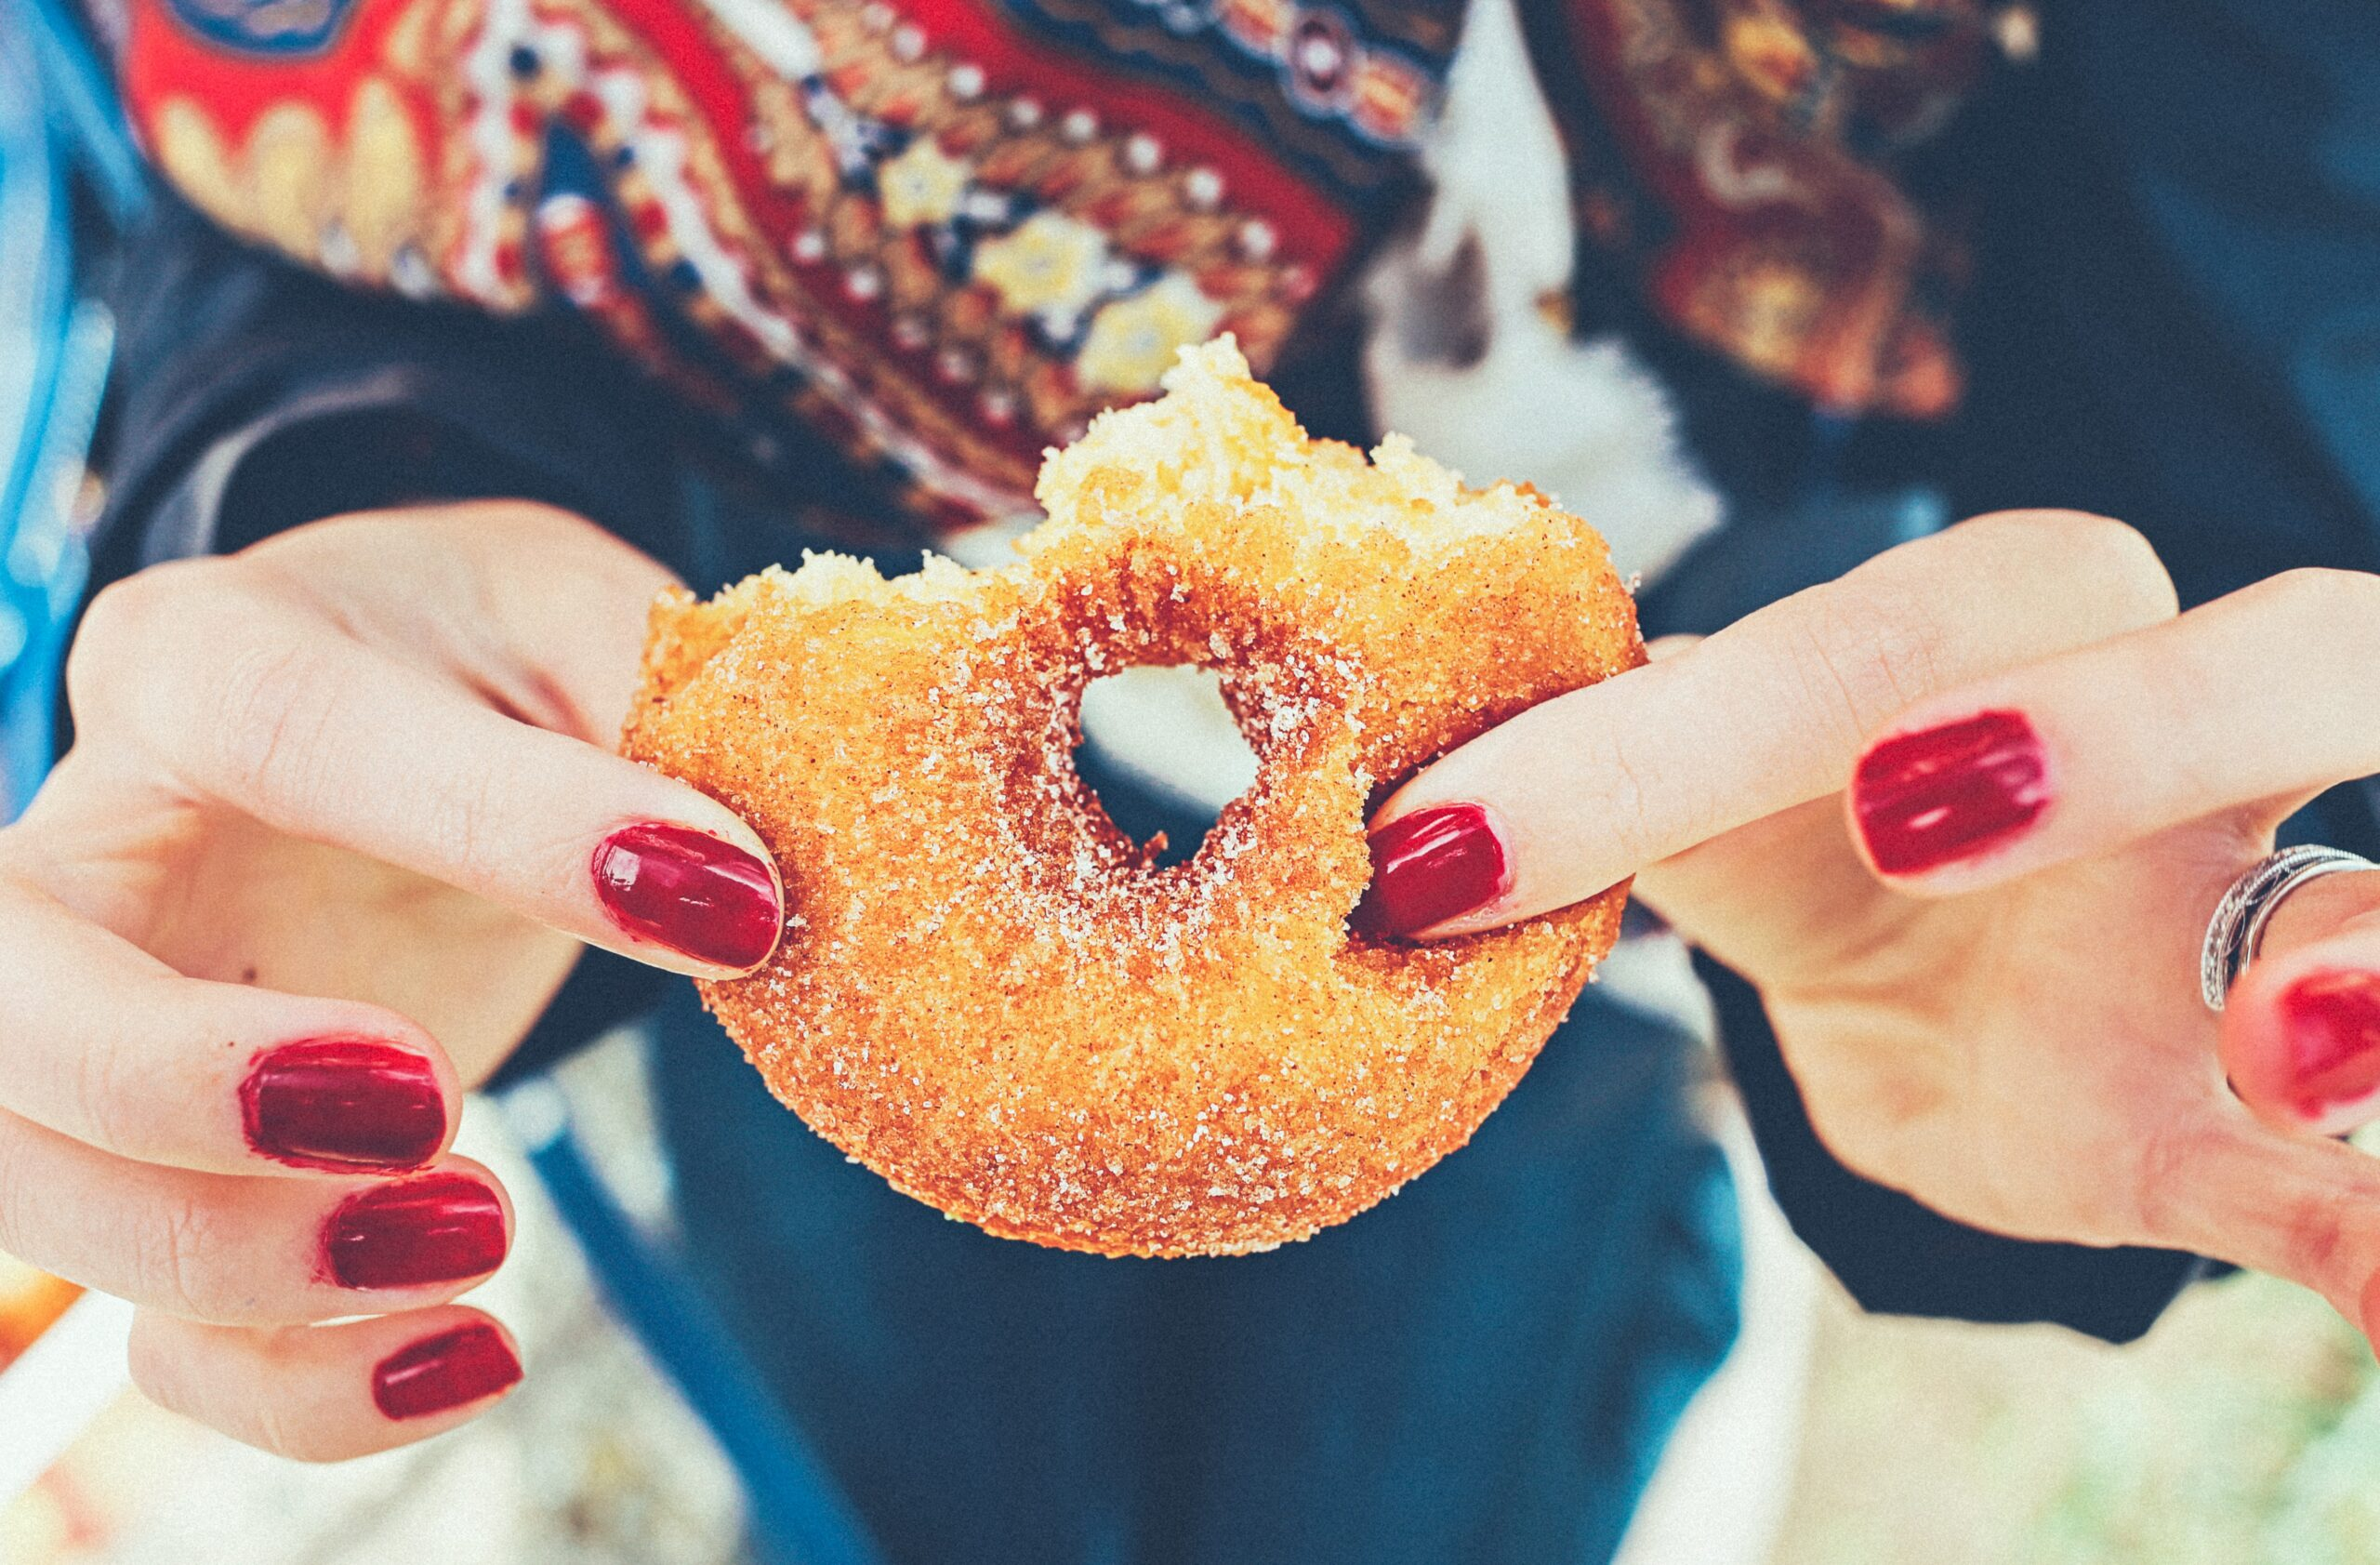 A women holding a doughnut with a bite taken out; why you aren't losing weight